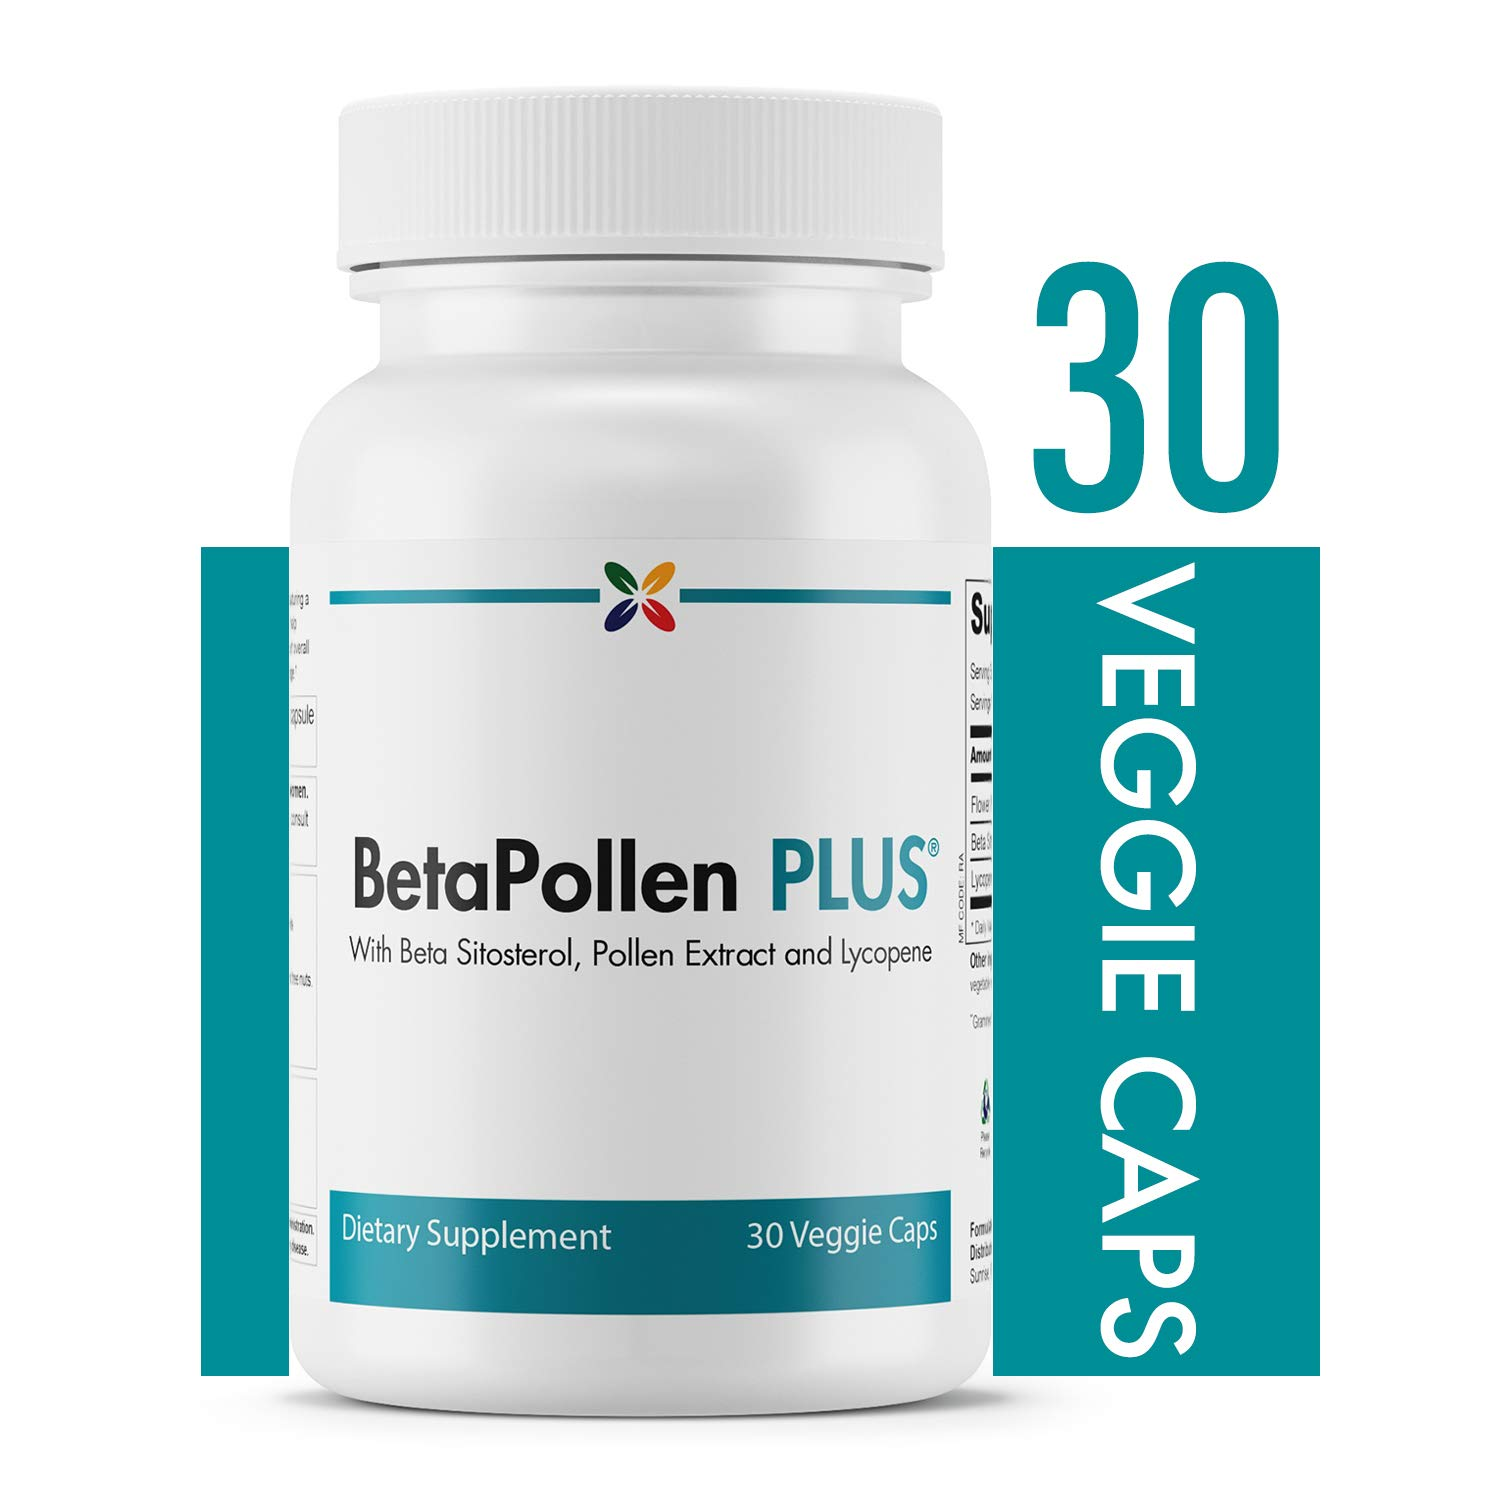 Stop Aging Now -  BetaPollen PLUS Prostate Support - Prostate Support With Beta Sitosterol, Pollen Extract and Lycopene - 30 Veggie Caps